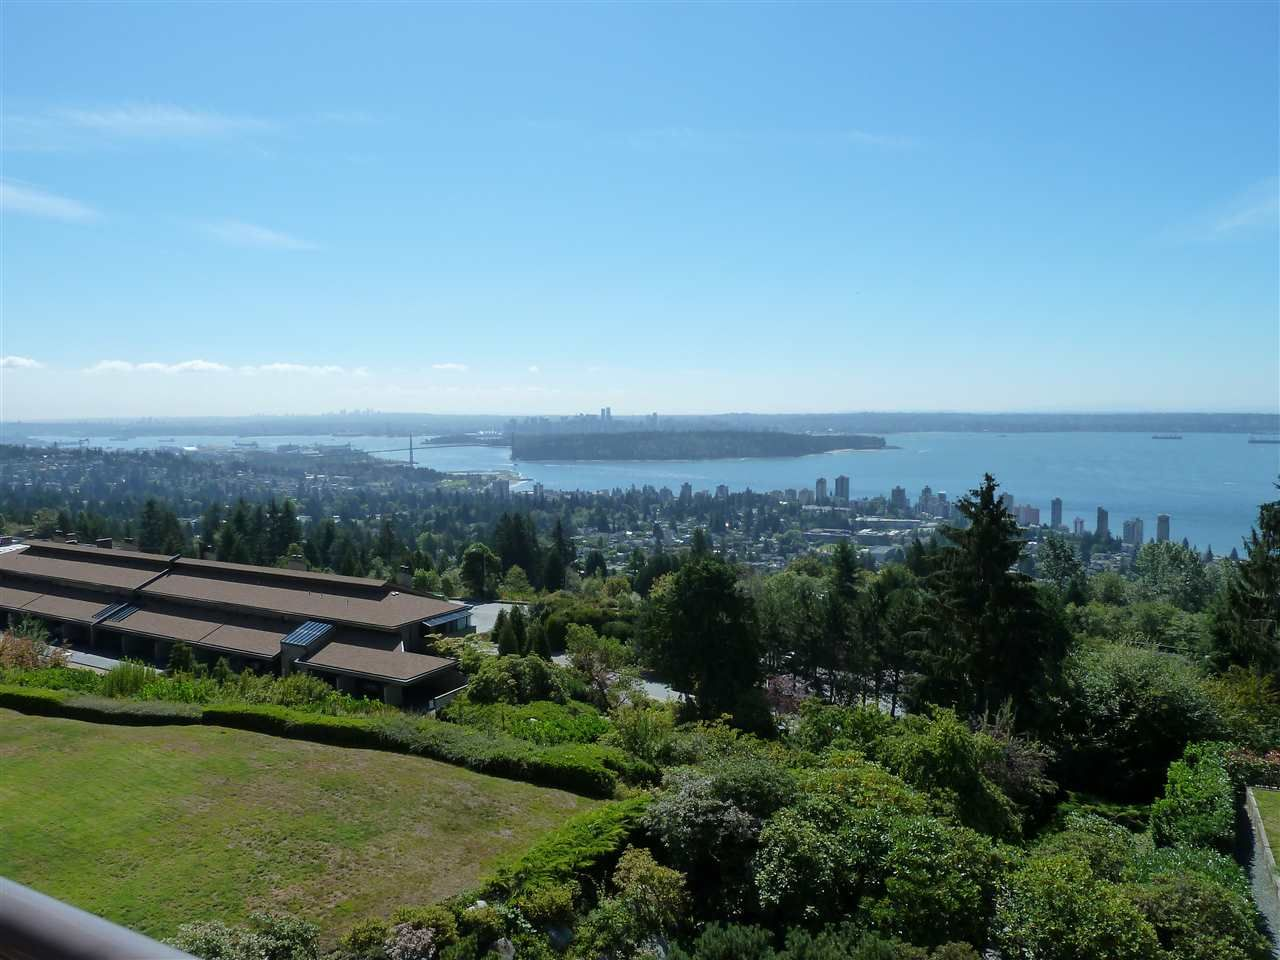 """Main Photo: 45 2238 FOLKESTONE Way in West Vancouver: Panorama Village Condo for sale in """"Panorama Village"""" : MLS®# R2101281"""